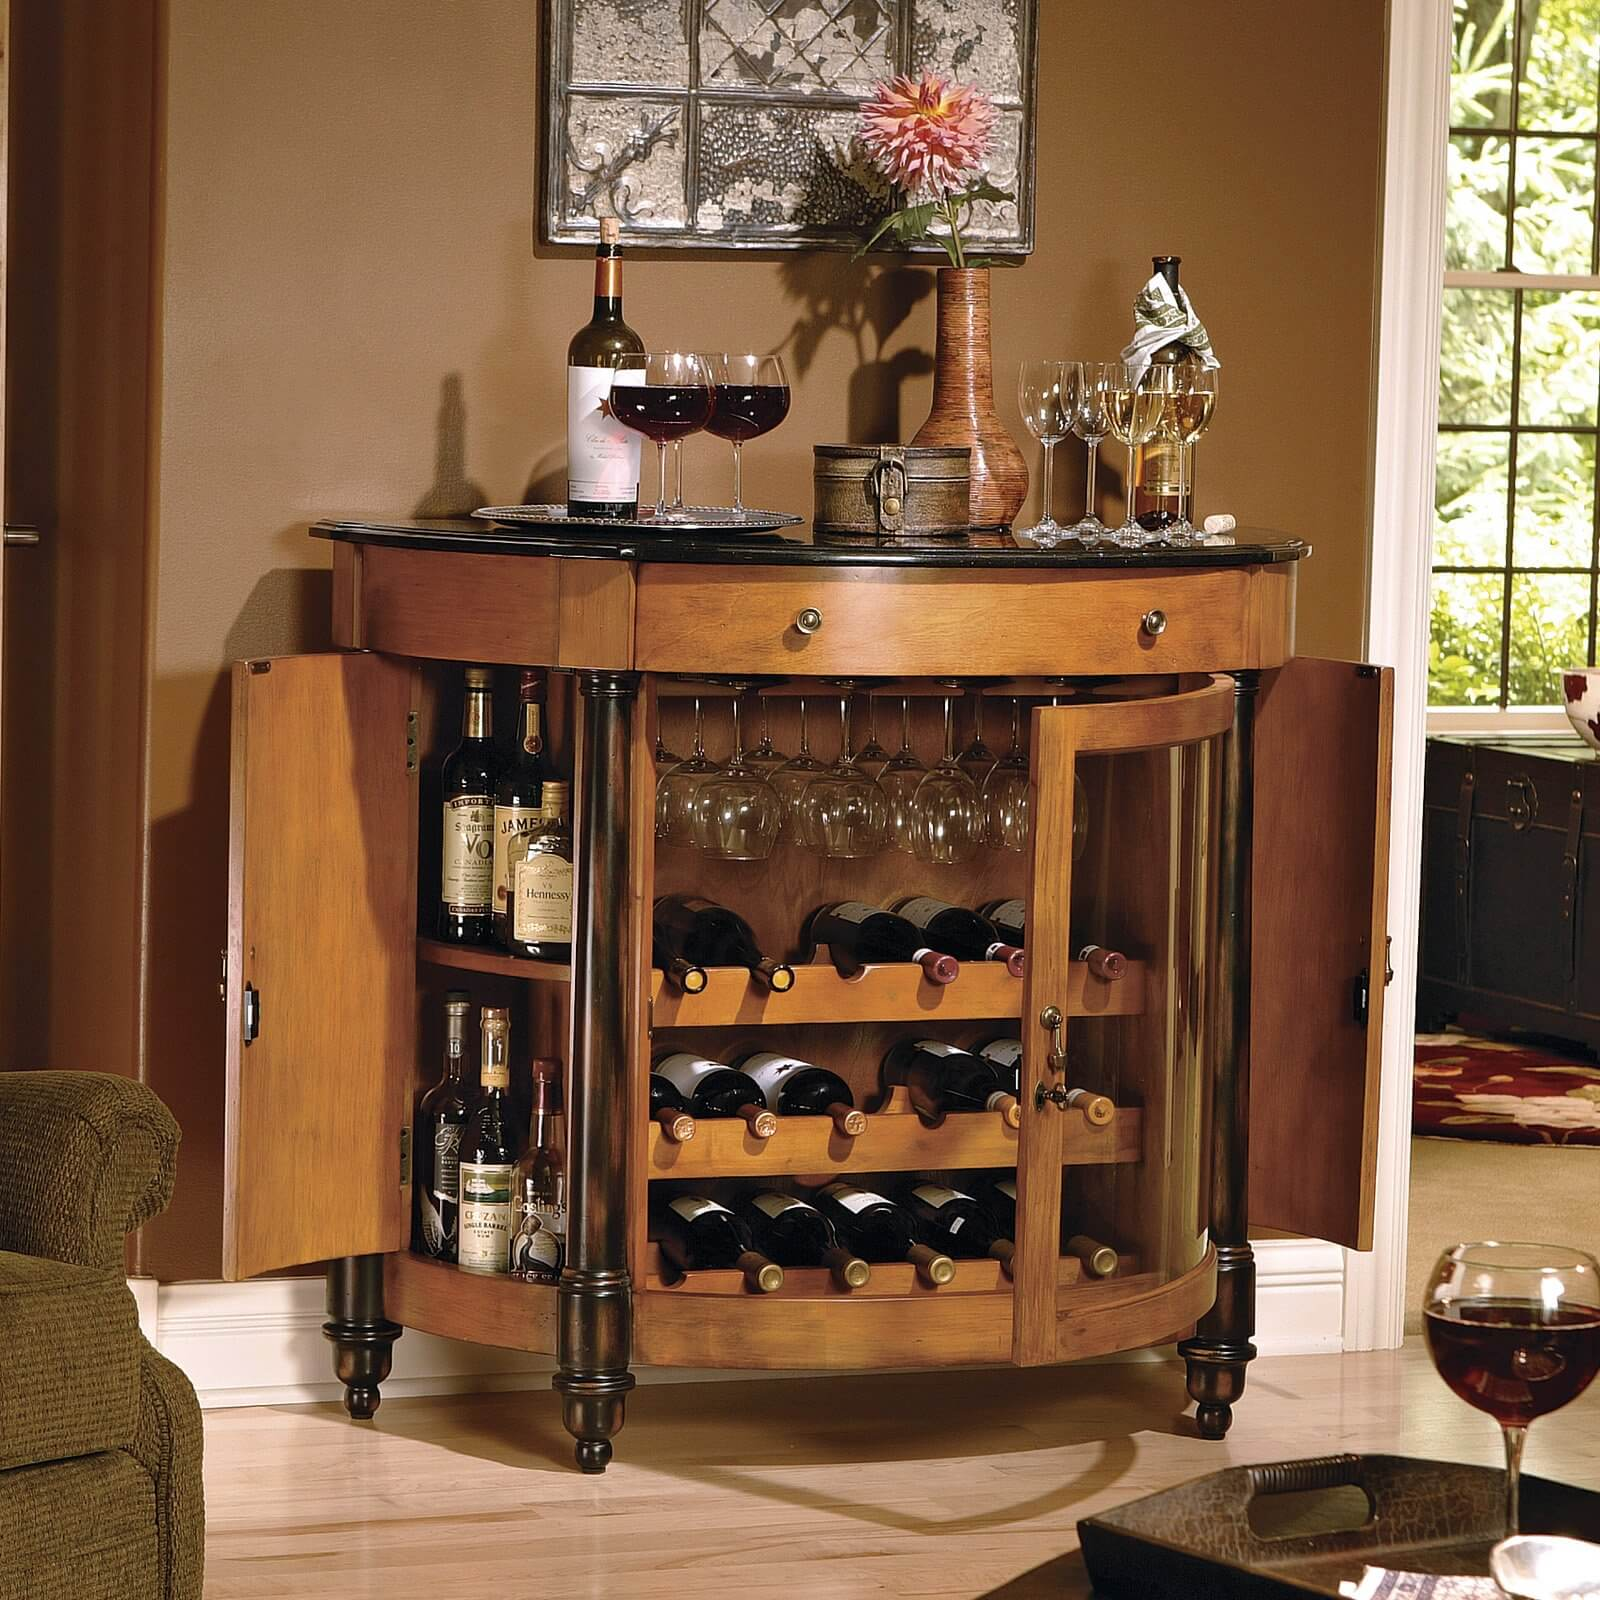 at home bar furniture. Here\u0027s A Home Bar For Wine Lovers With It\u0027s 18 Bottle Rack. At Furniture N